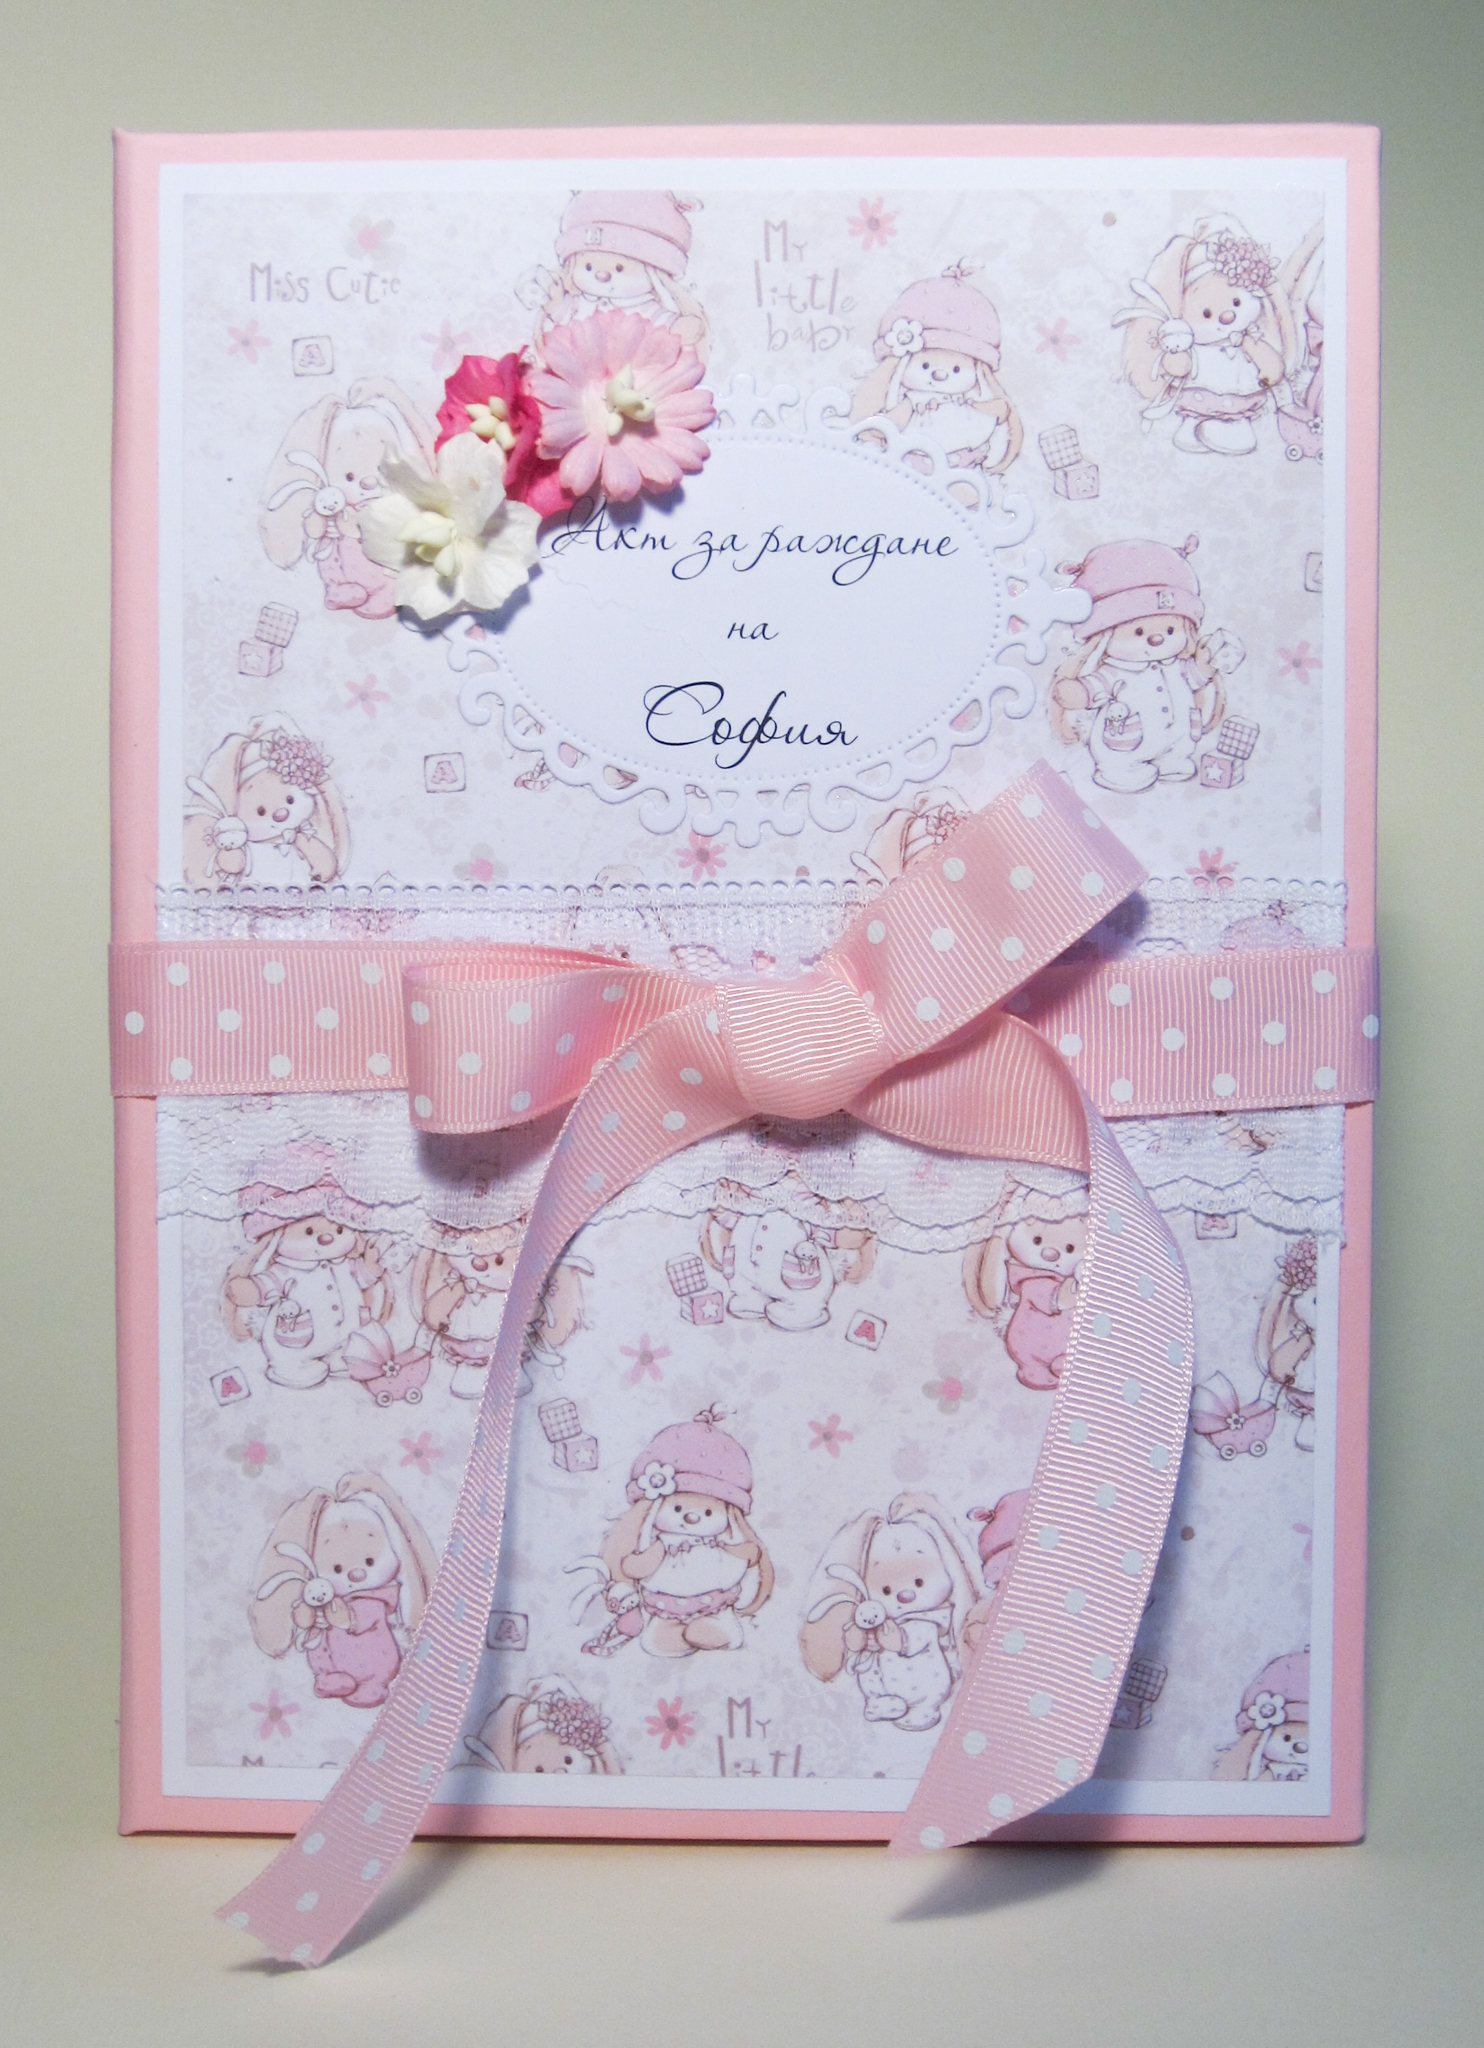 Birth certificate holder personalized certificate folder folder for birth certificate holder personalized certificate folder folder for documents baby folder new baby gift baby shower negle Gallery